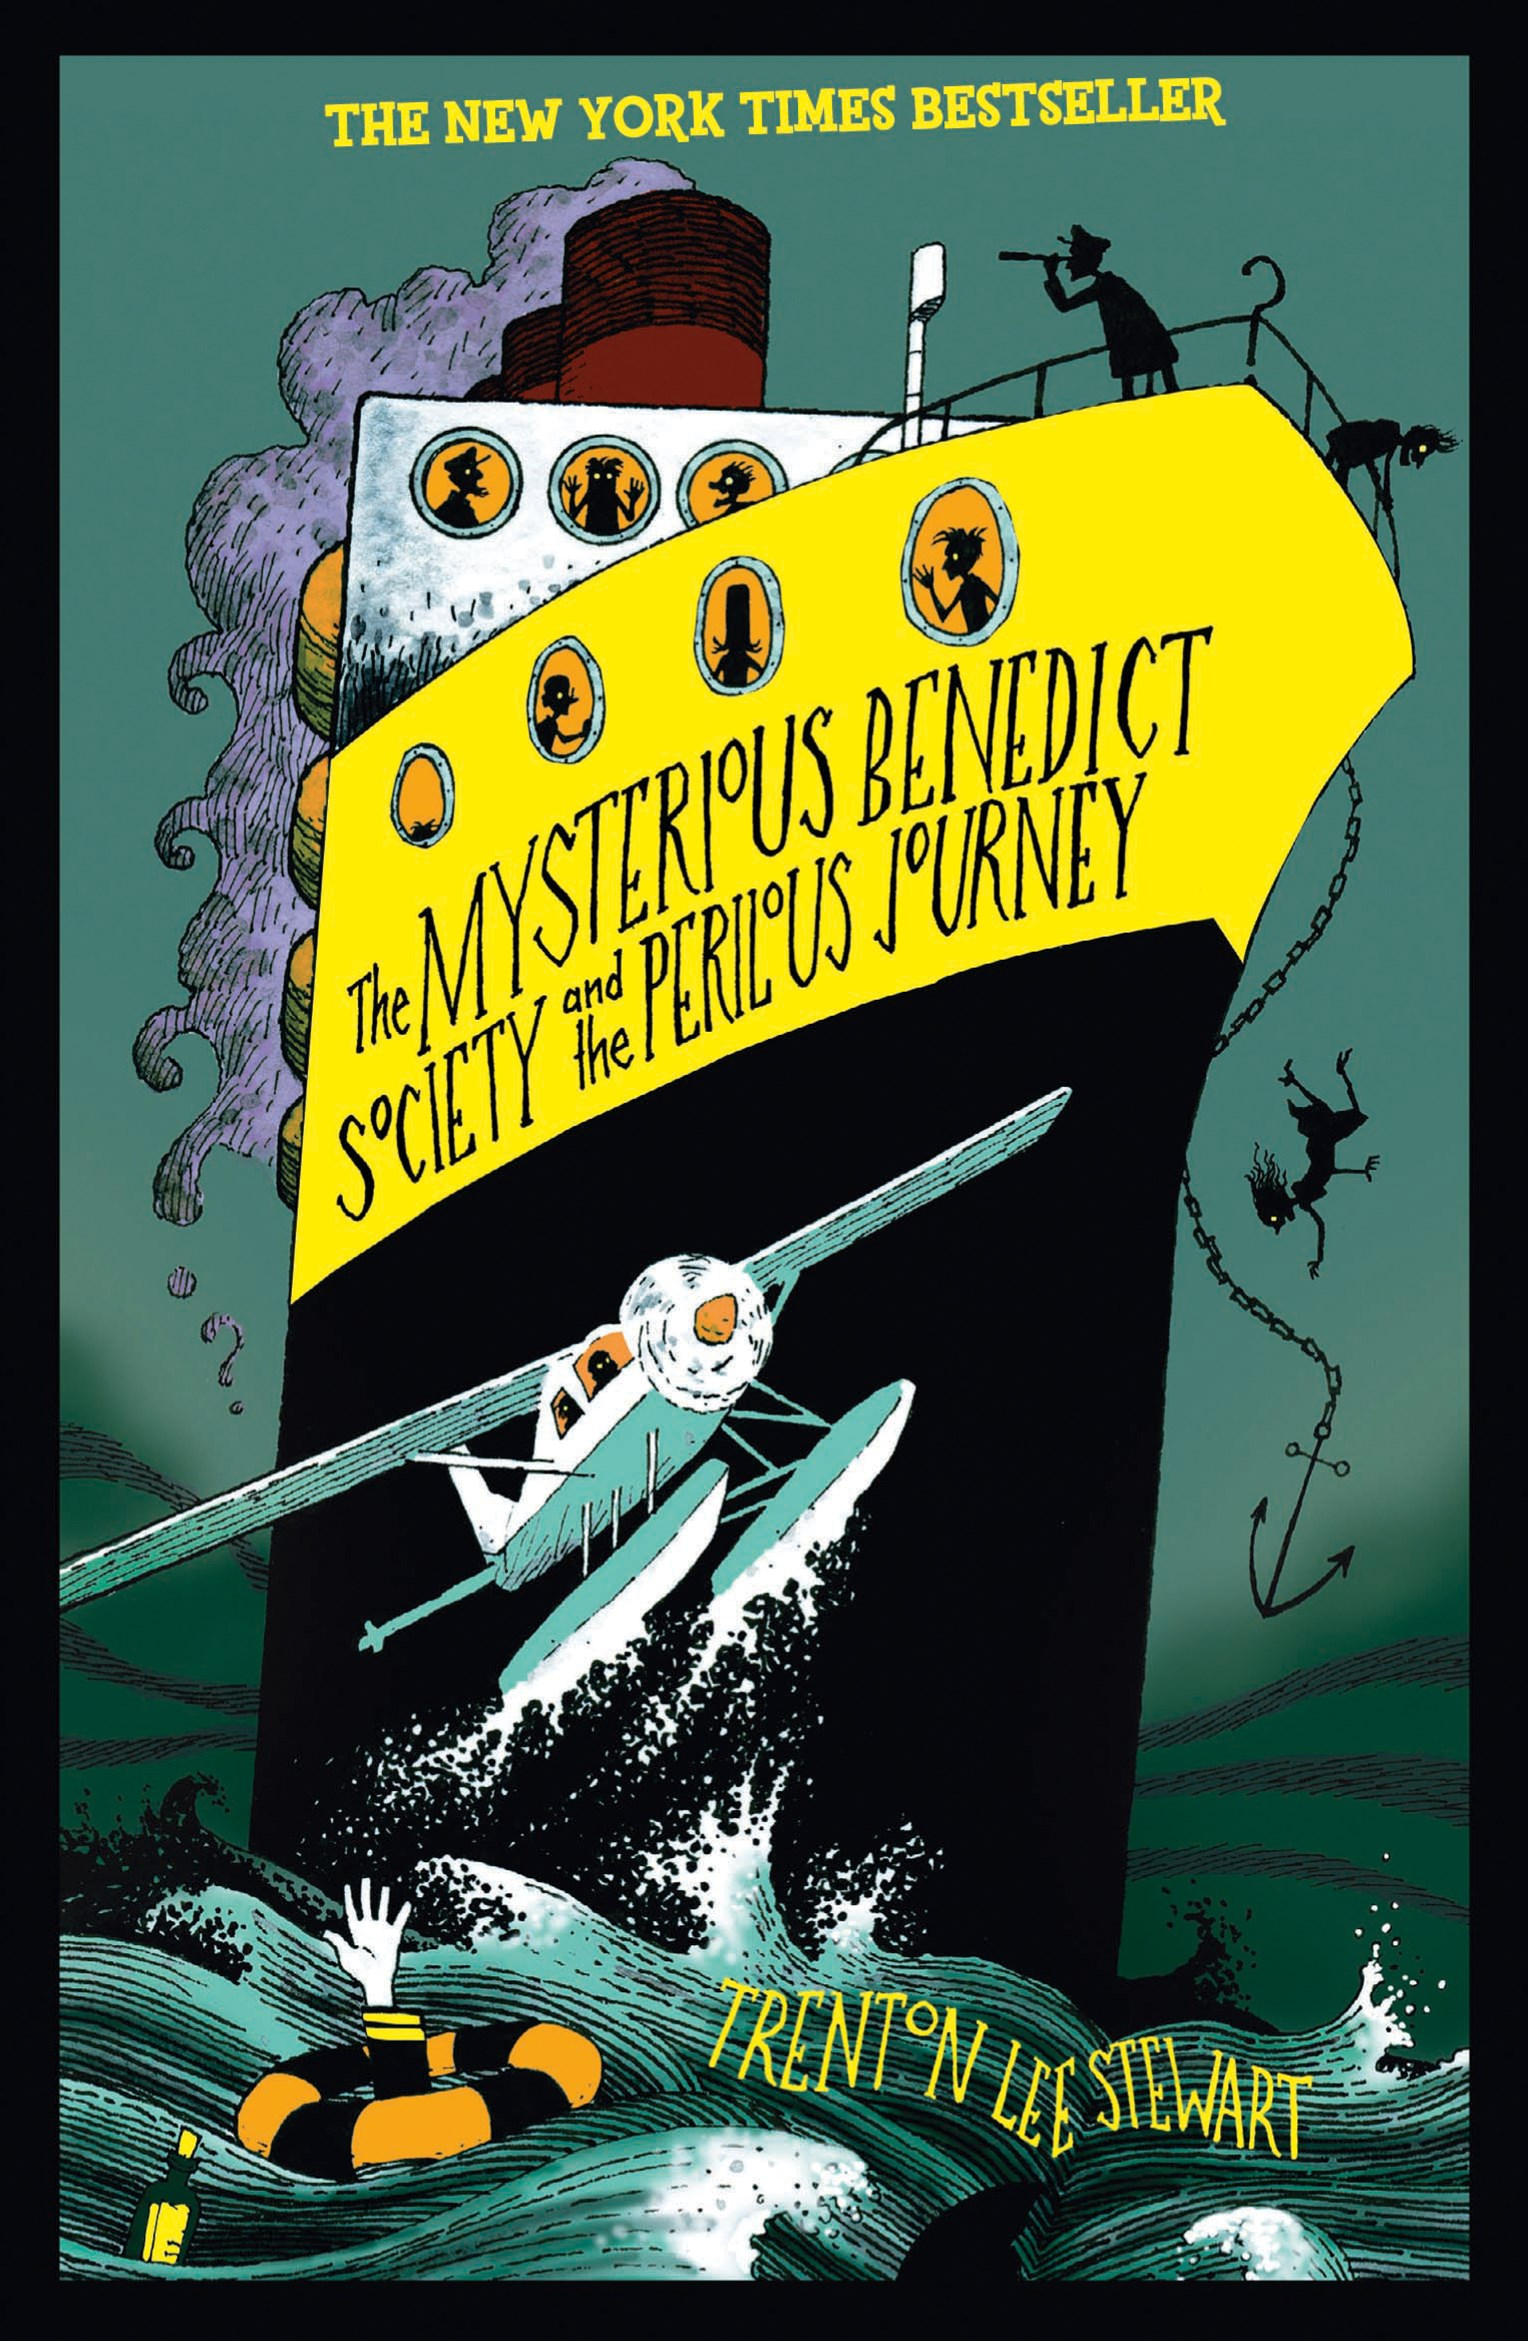 Mysterious Benedict Society #2: The Mysterious Benedict Society and The Perilous Journey